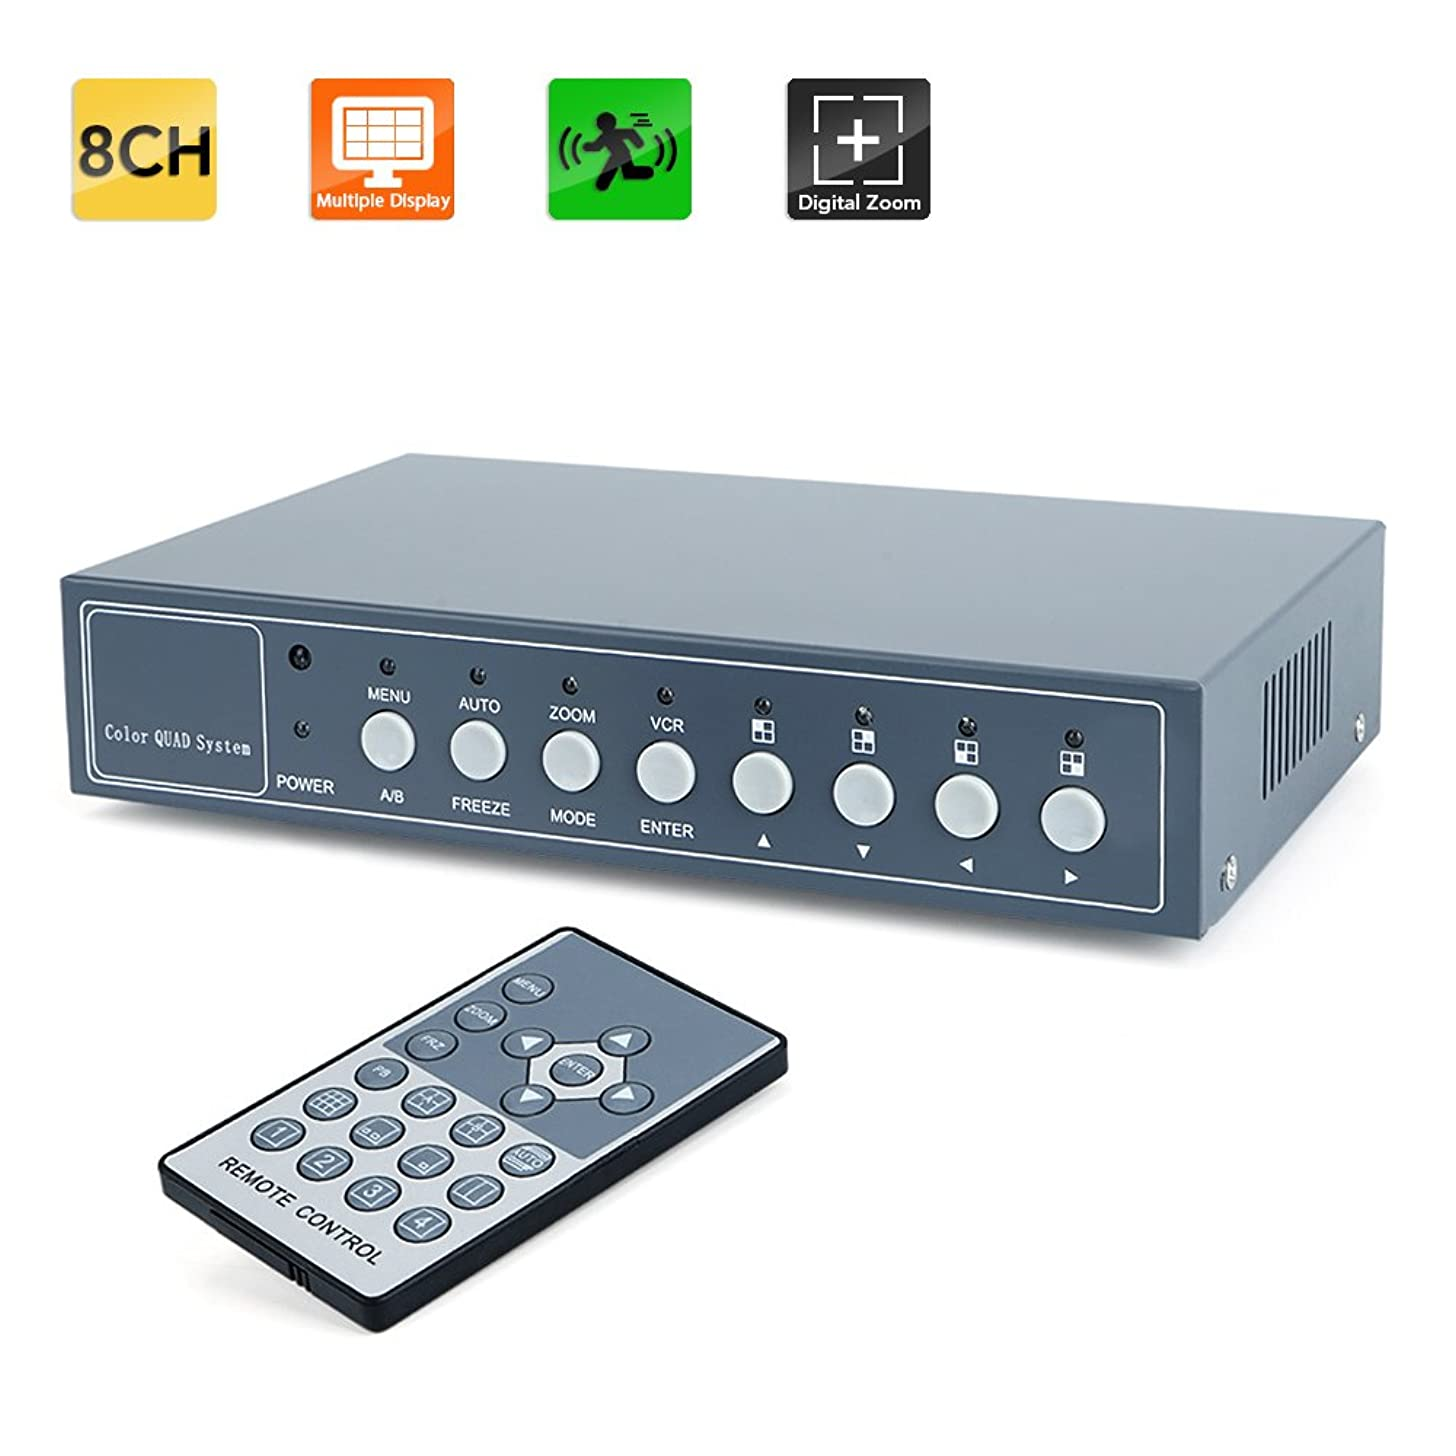 Toughsty? 8Ch Color Non-Realtime Video Quad Processor CCTV Security Video Splitter with Audio & PIP